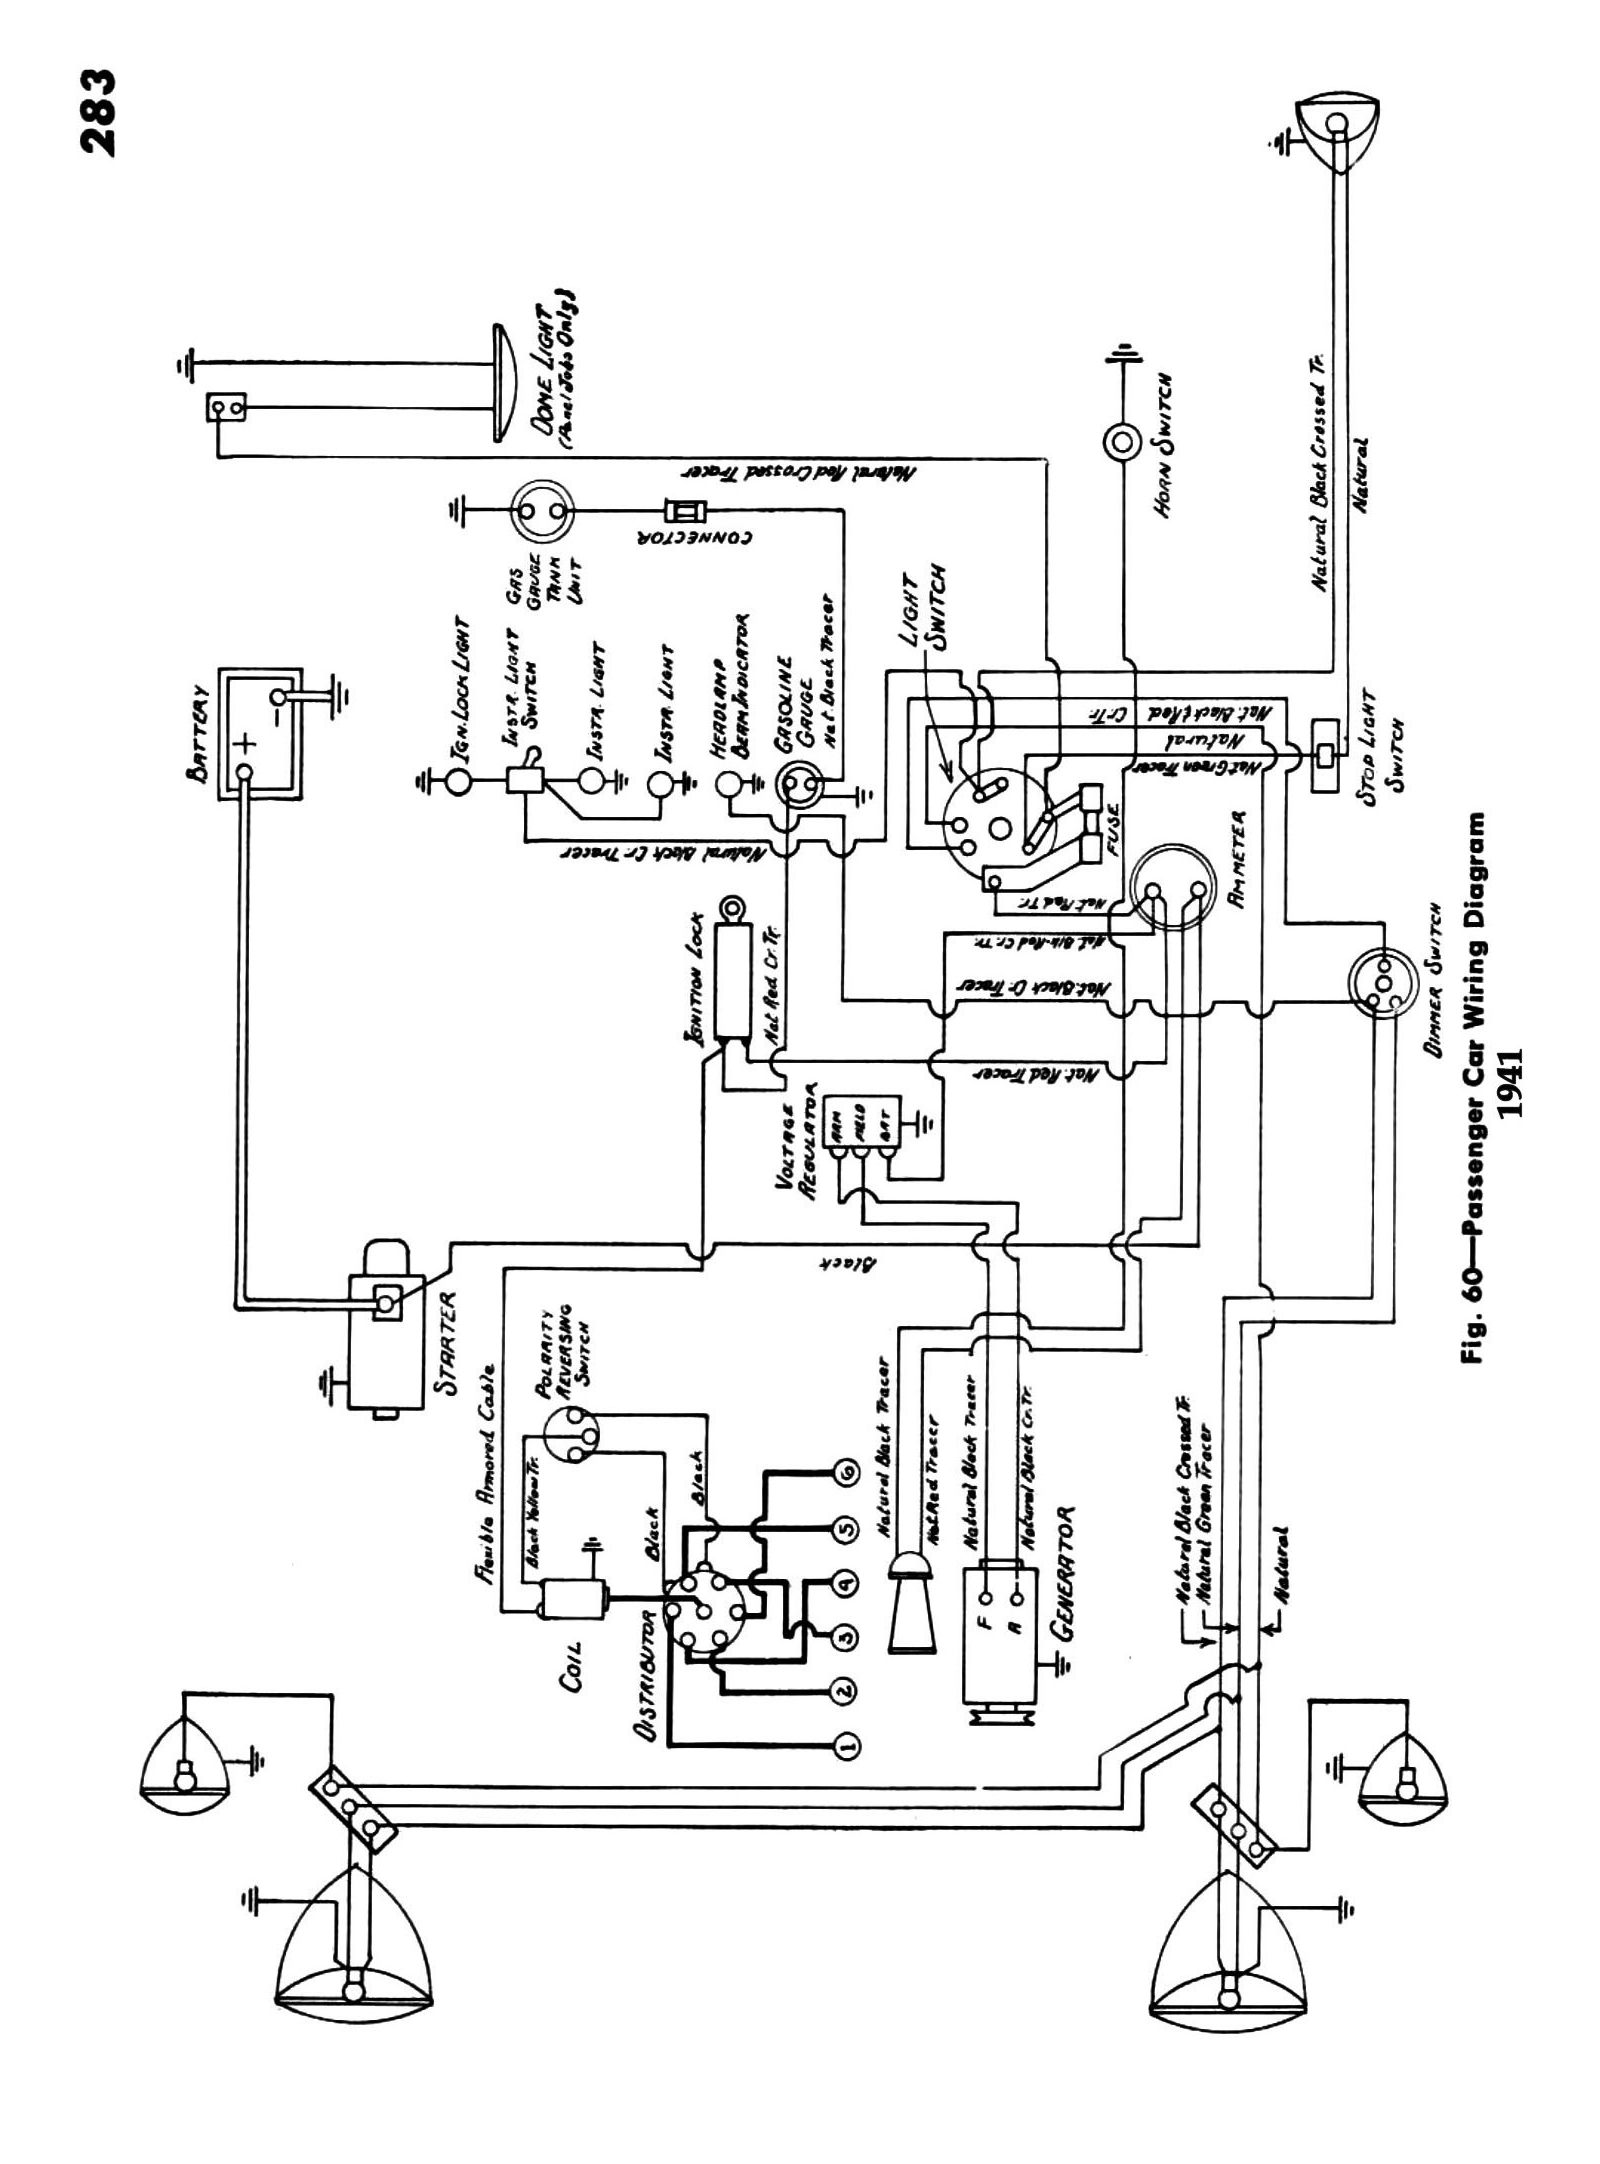 C10 Starter Wiring Diagram Archive Of Automotive 1969 Chevy 58 Truck Just Schematic Rh Lailamaed Co Uk 1971